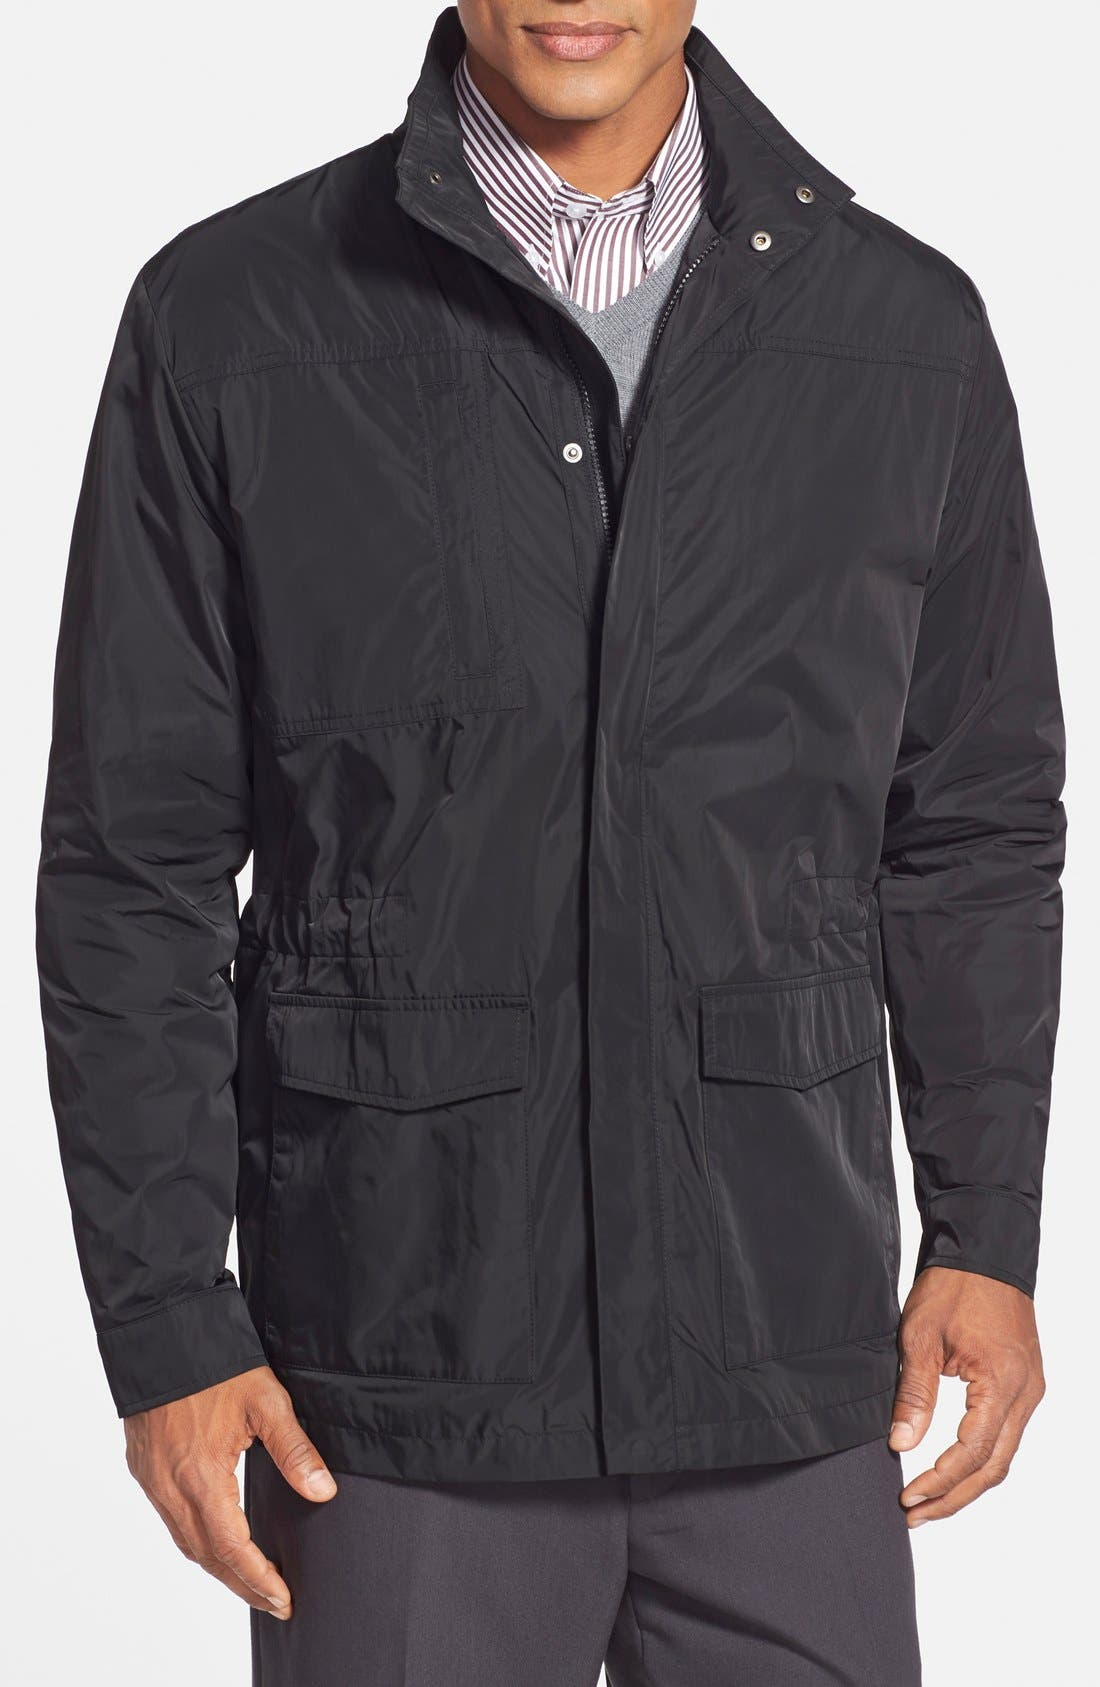 Birch Bay Water Resistant Jacket,                             Main thumbnail 1, color,                             Black